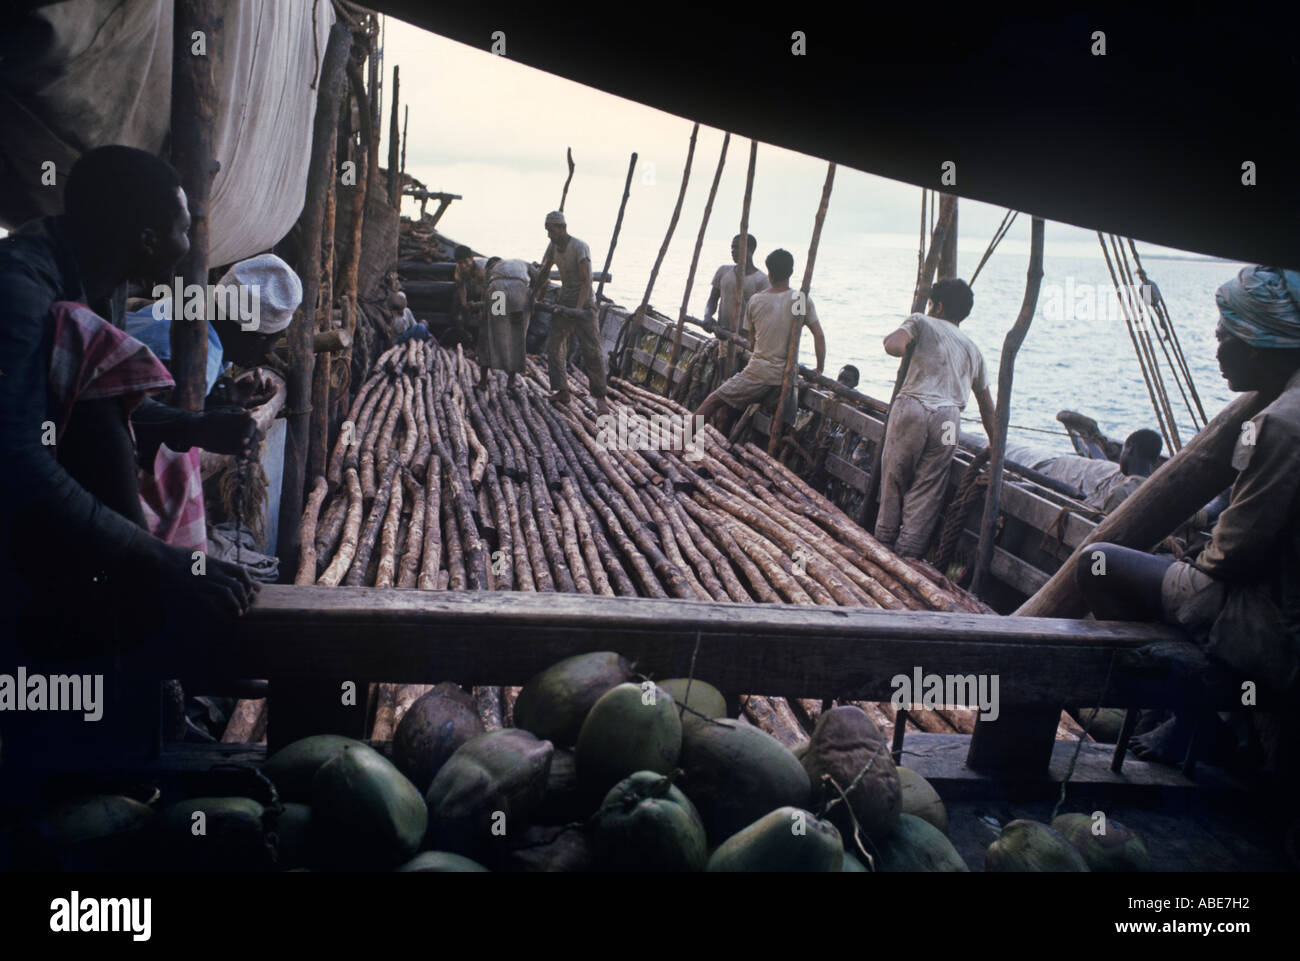 With one man at left keeping score--a knot for every 20 poles--a dhow slowly fills with a homebound cargo of mangrove poles - Stock Image